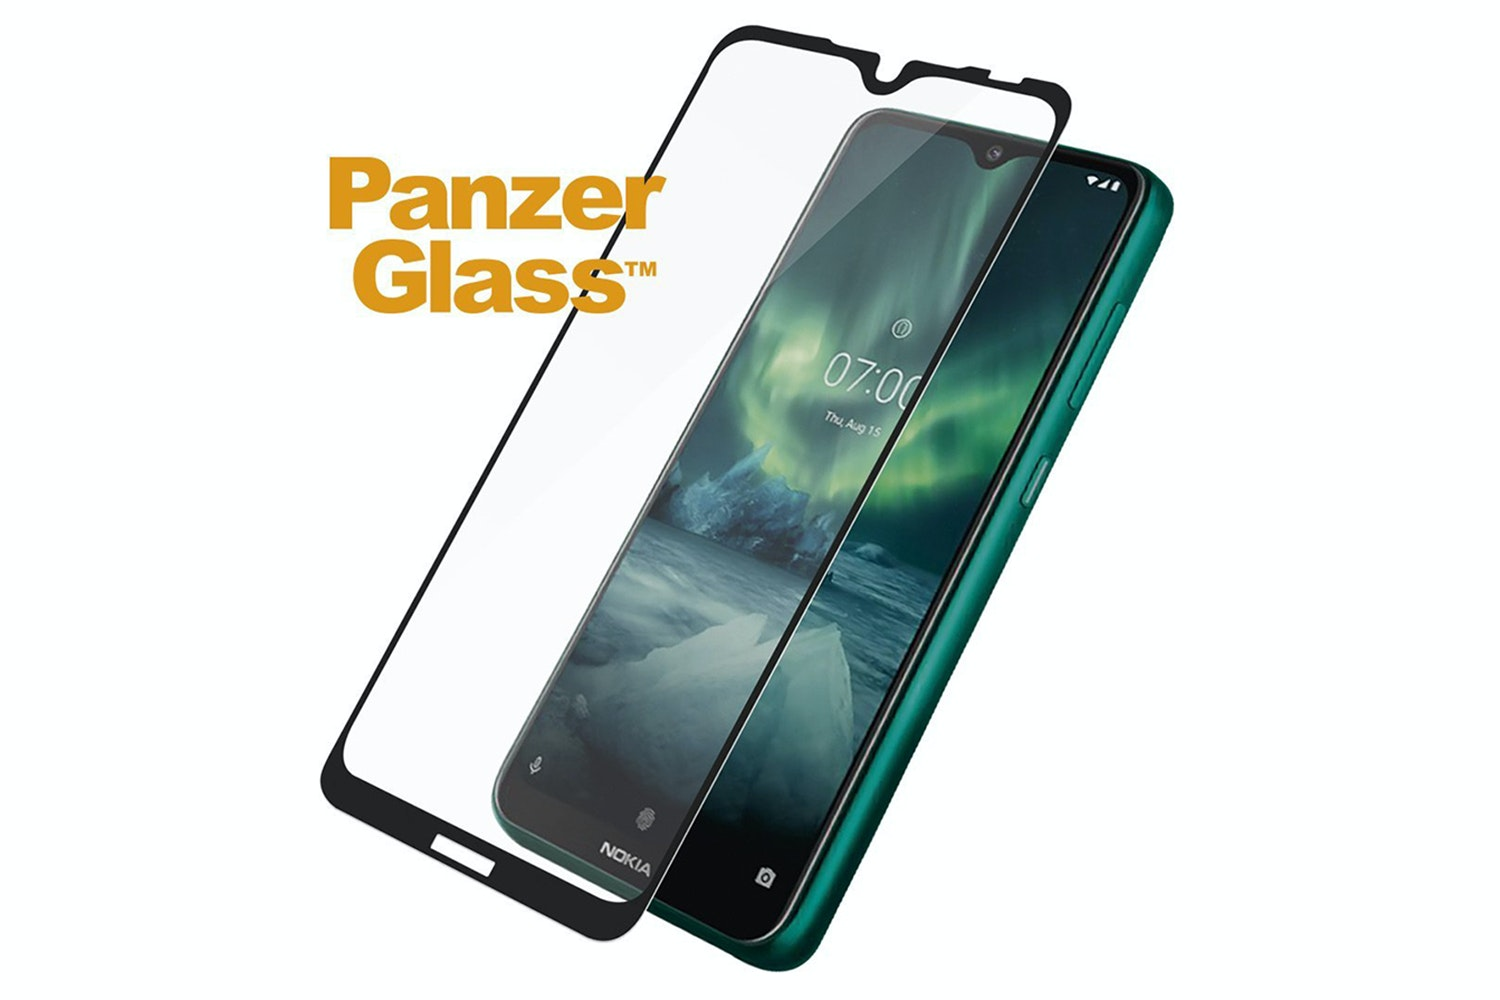 Panzerglass Nokia 6 2 7 2 Screen Protector Black Ireland